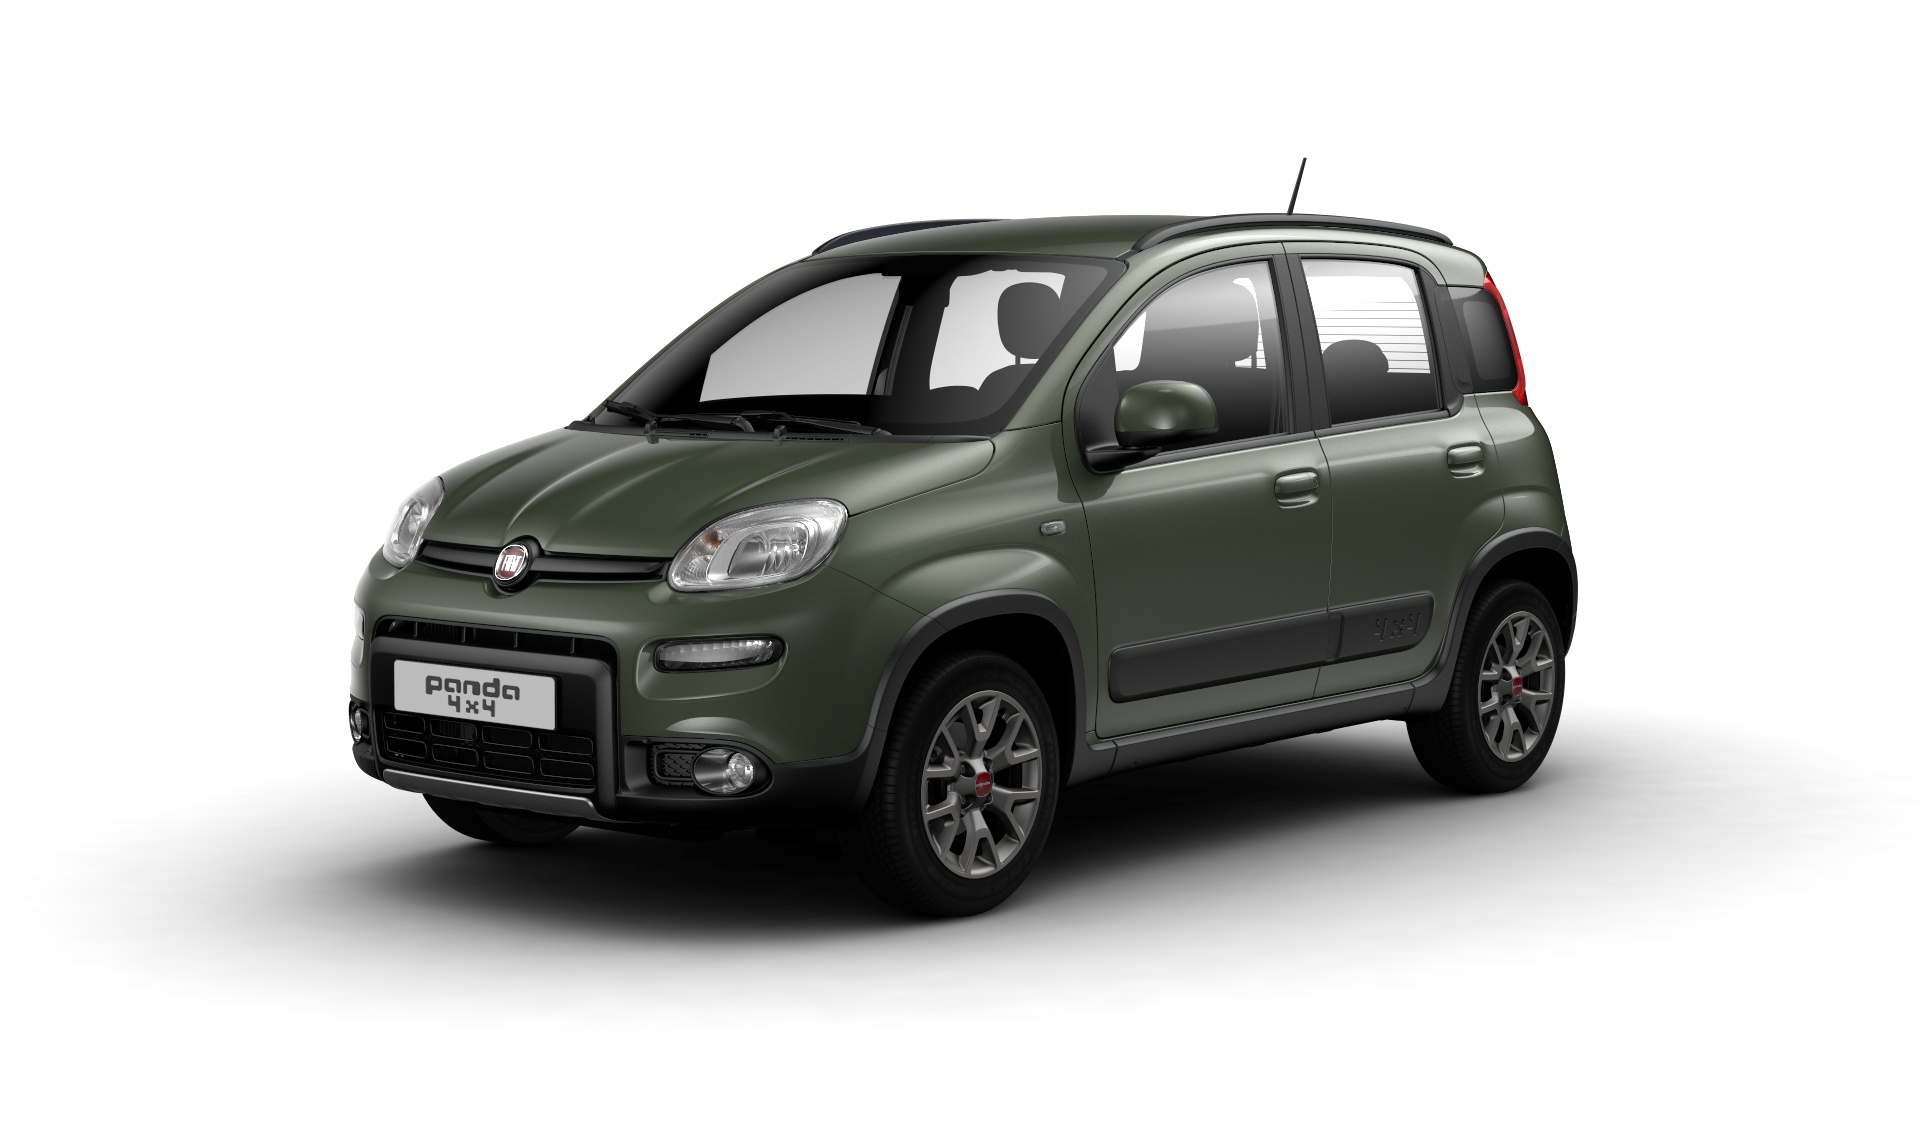 fiat panda 4x4 cross colori disponibili. Black Bedroom Furniture Sets. Home Design Ideas